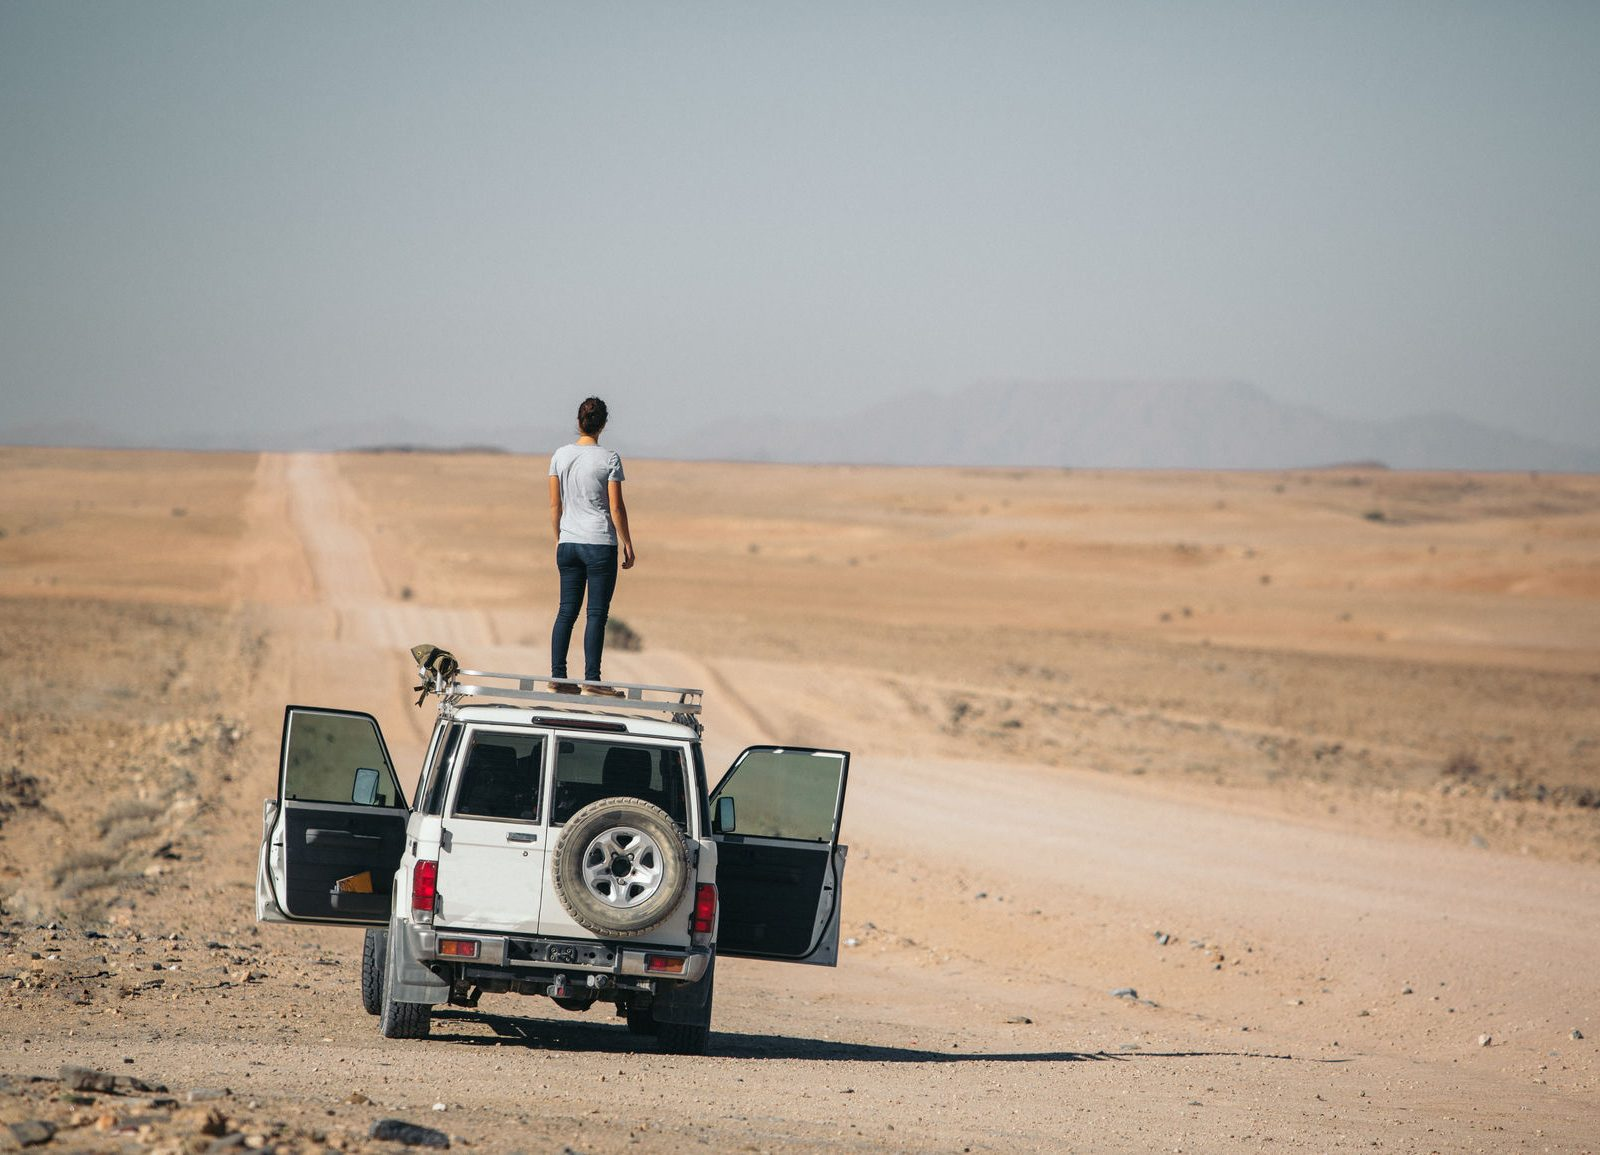 A woman stands on top of a car in a desert